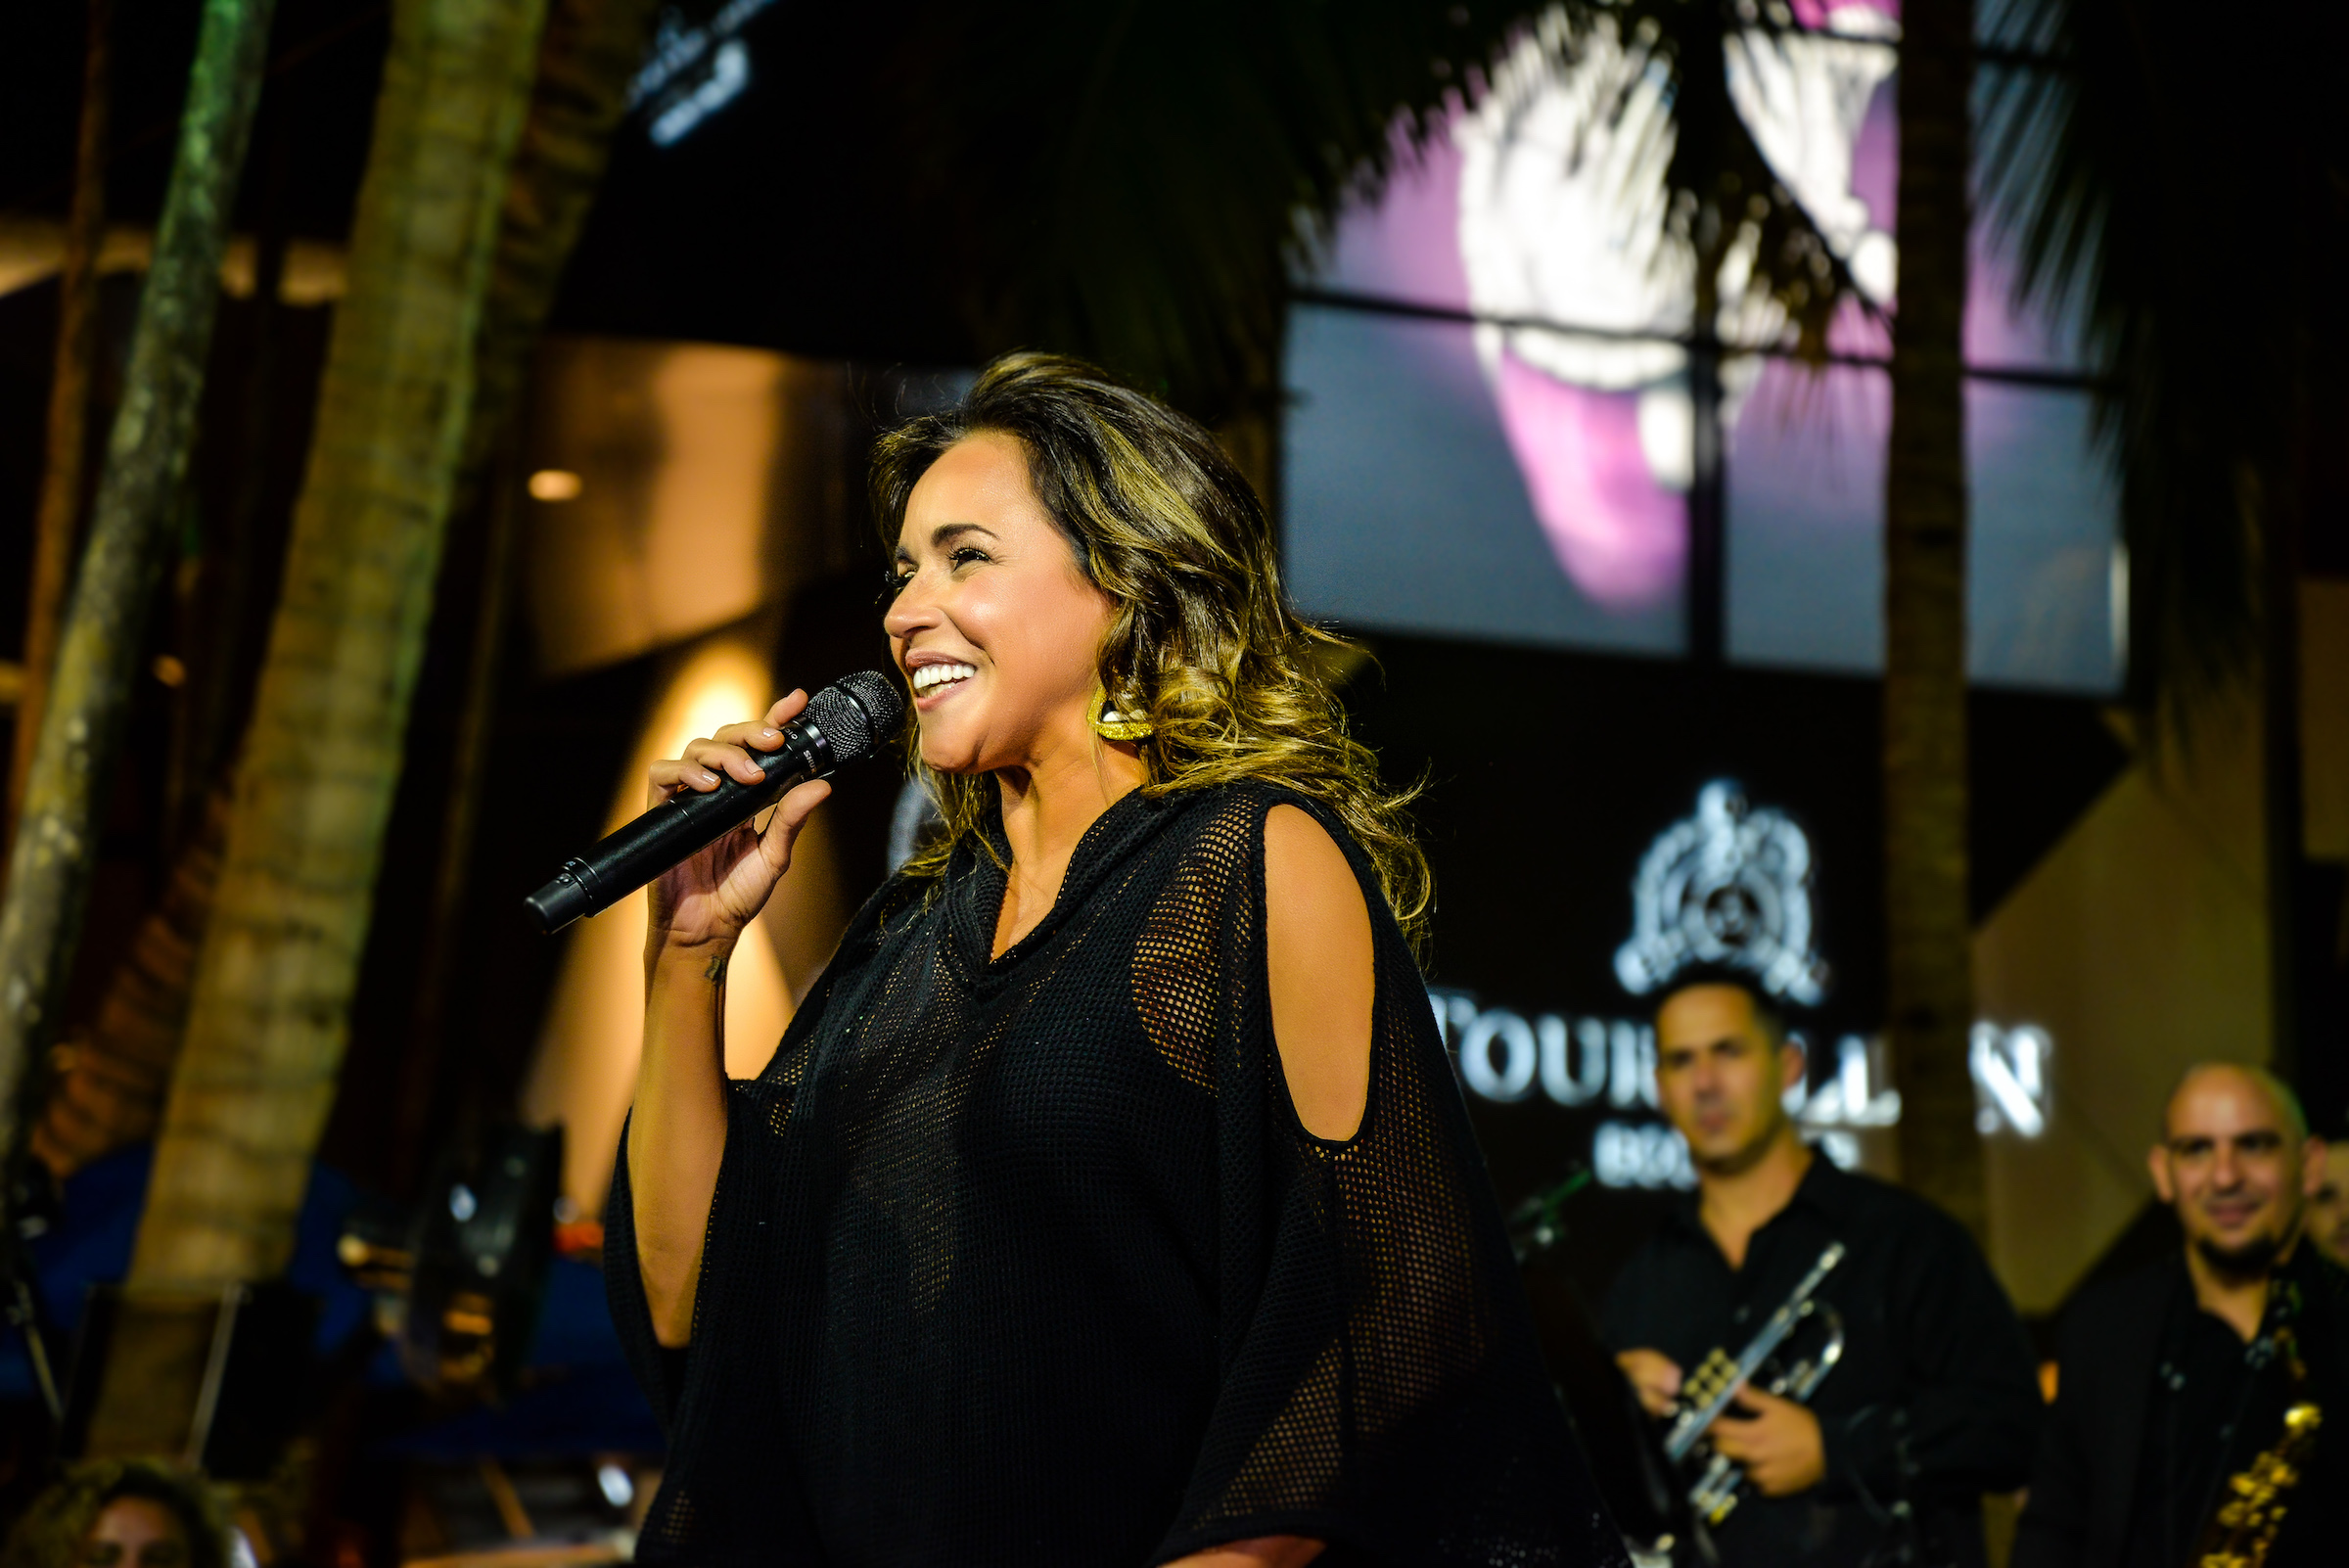 Daniela Mercury BrazilFoundation Miami PreGala Cocktail Reception 2018 Miami Design District Philanthropy Florida